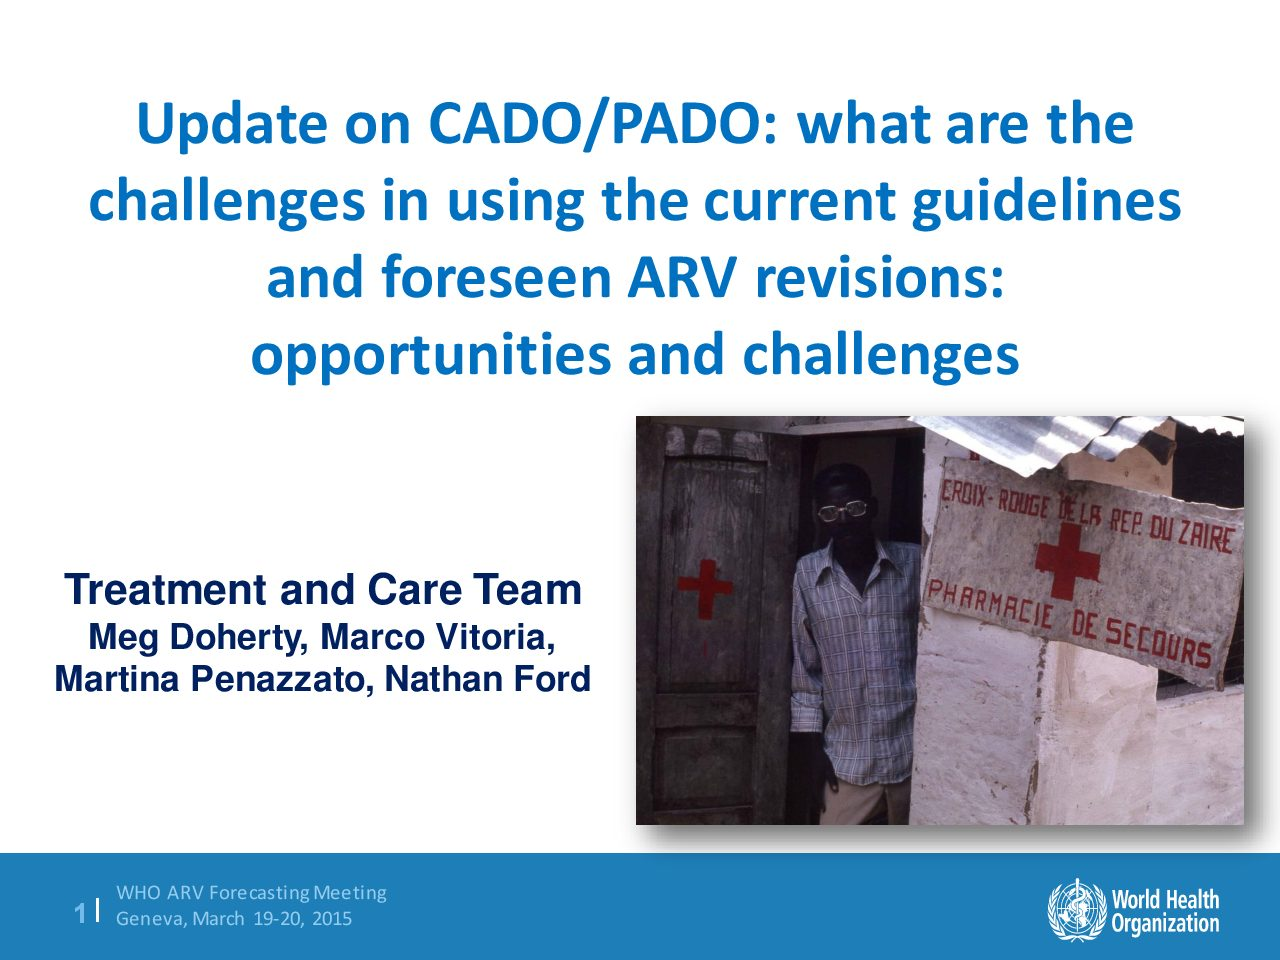 WHO update on CADO/PADO what are the challenges in using the current guidelines and foreseen ARV revisions opportunities and challenges.